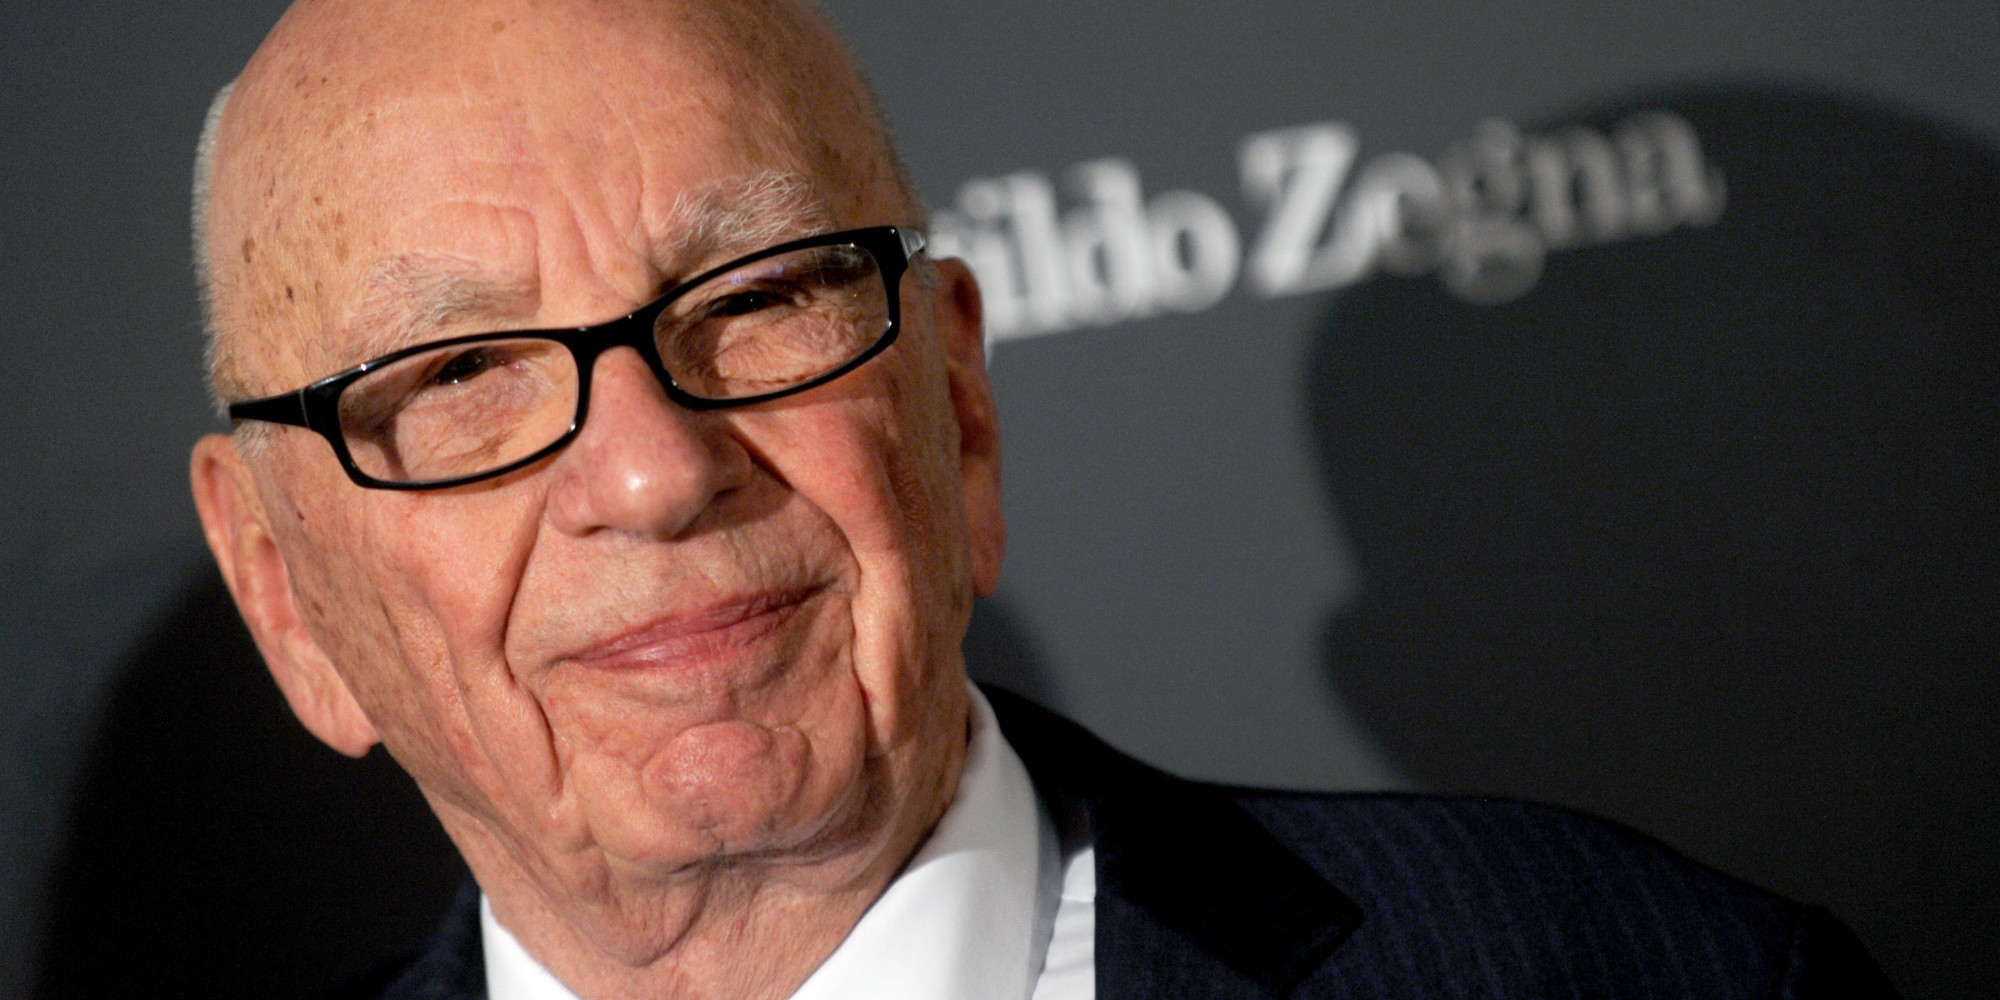 rupert murdoch leadership style Ap/richard drewmedia magnate rupert murdoch at a news conference  he  believes that deposing the iraqi leader would lead to cheaper oil.